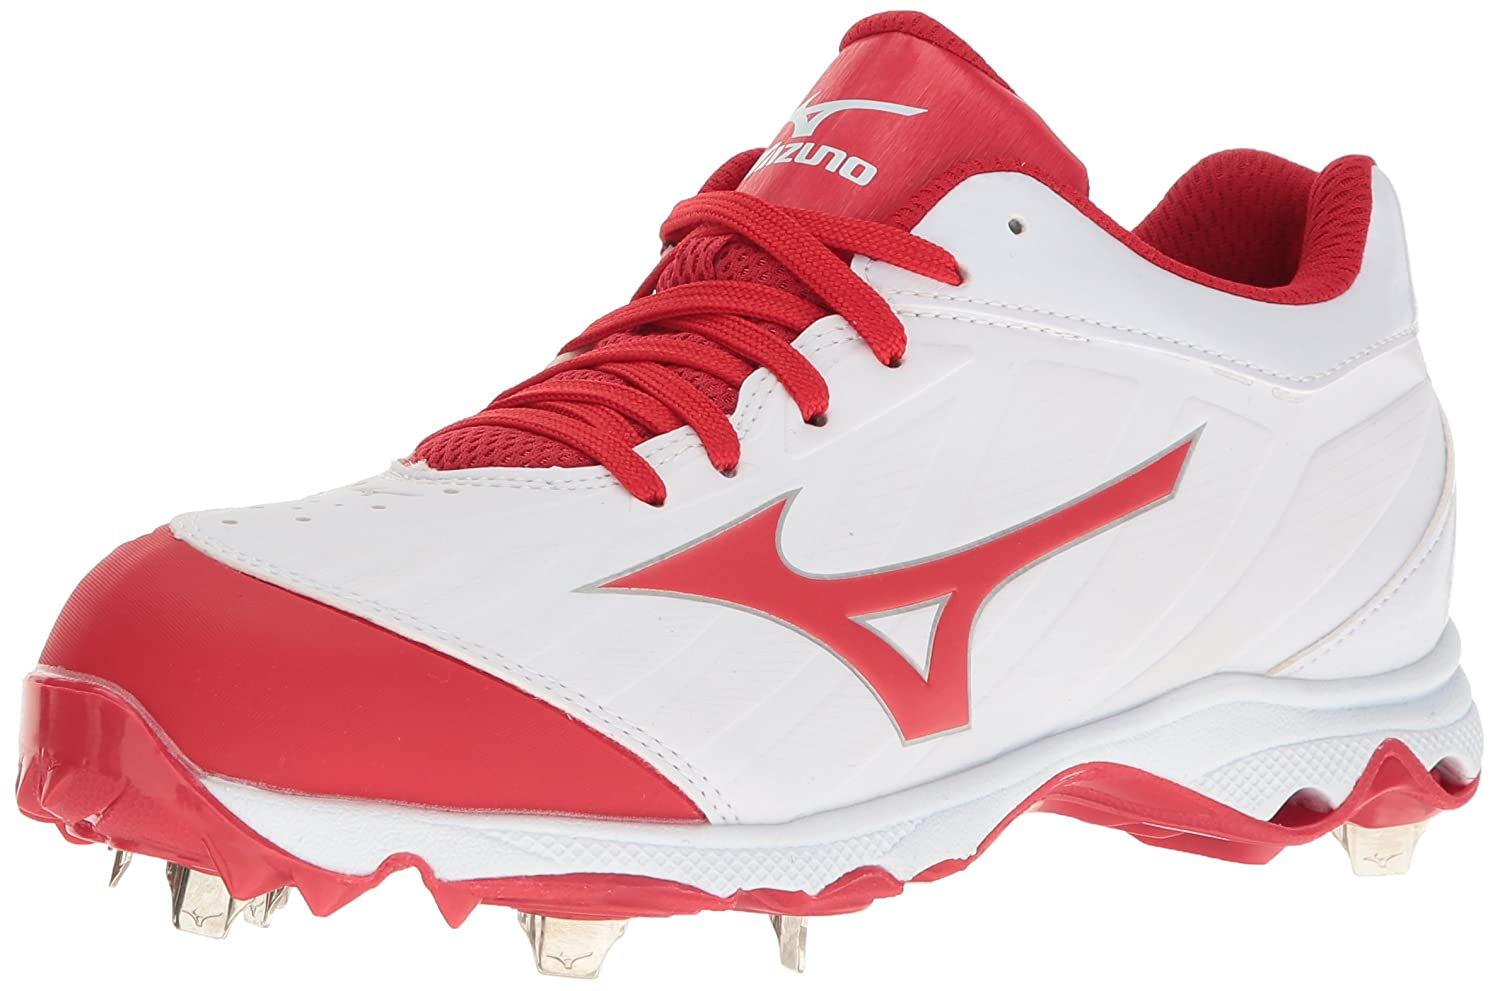 Mizuno Women's 9-Spike Advanced Sweep 3 Softball Shoe B01HQE271W 7.5 D US|White-red